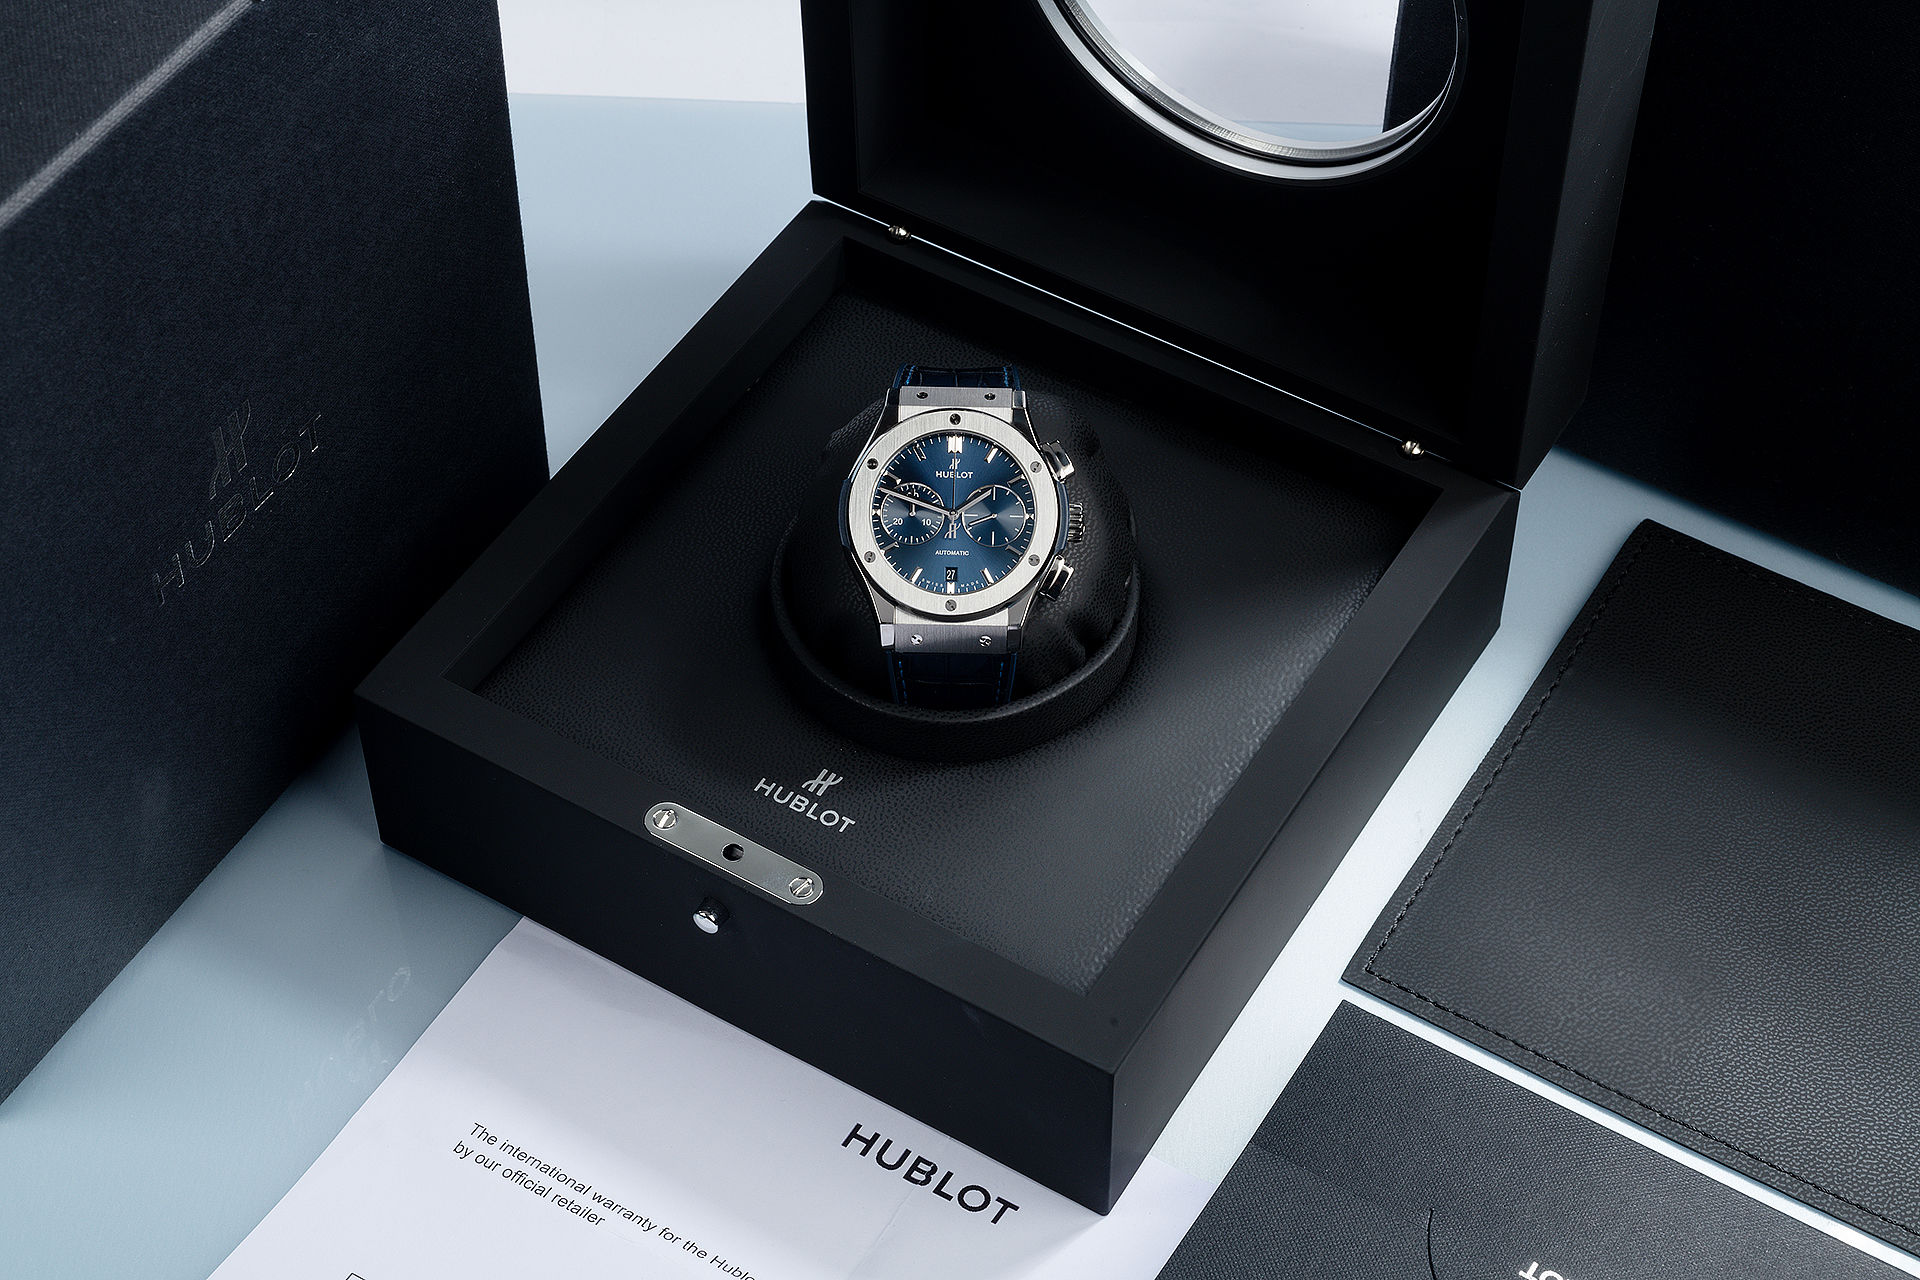 ref 521.NX.7170.LR | Titanium 'Box & Papers' | Hublot Classic Fusion Chrono